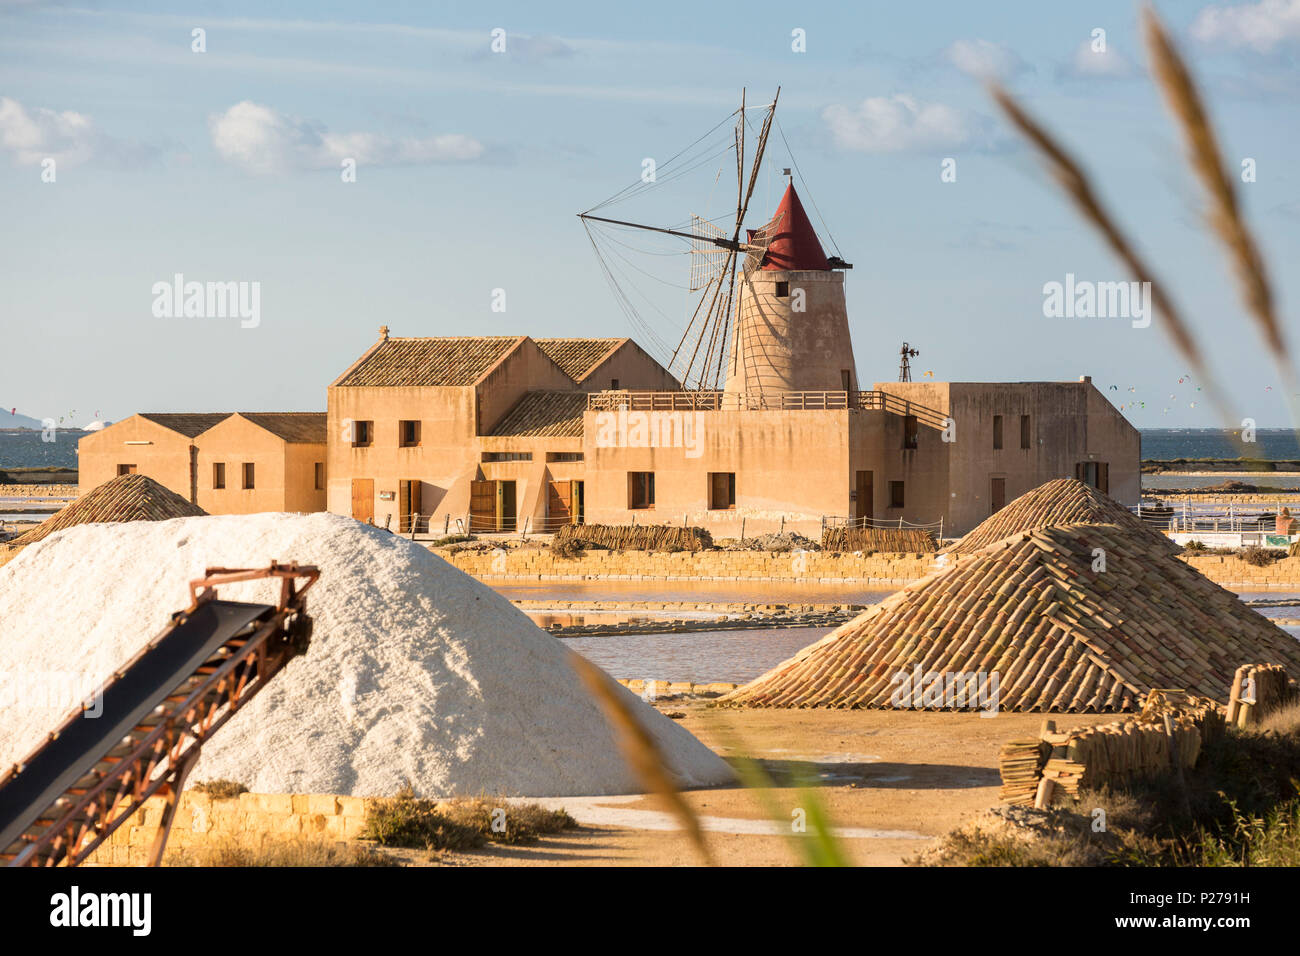 Pyramids of salt in front of Infersa windmill, on the coast connecting Marsala to Trapani, Trapani province, Sicily, Italy - Stock Image